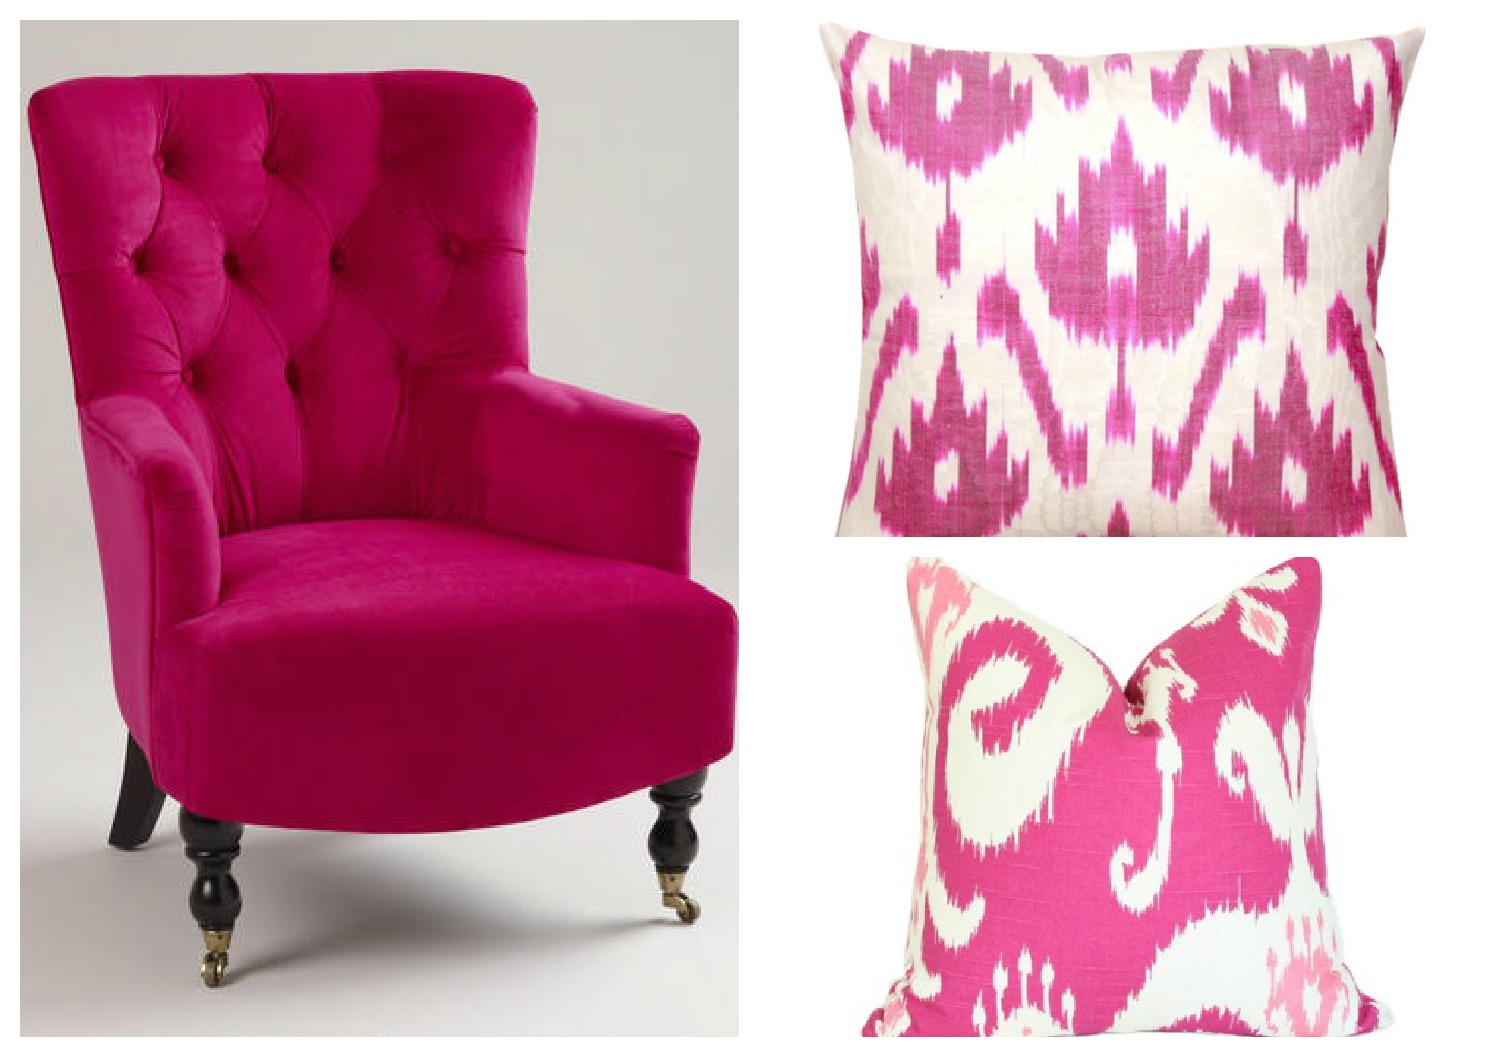 fuchsia chair and pillows